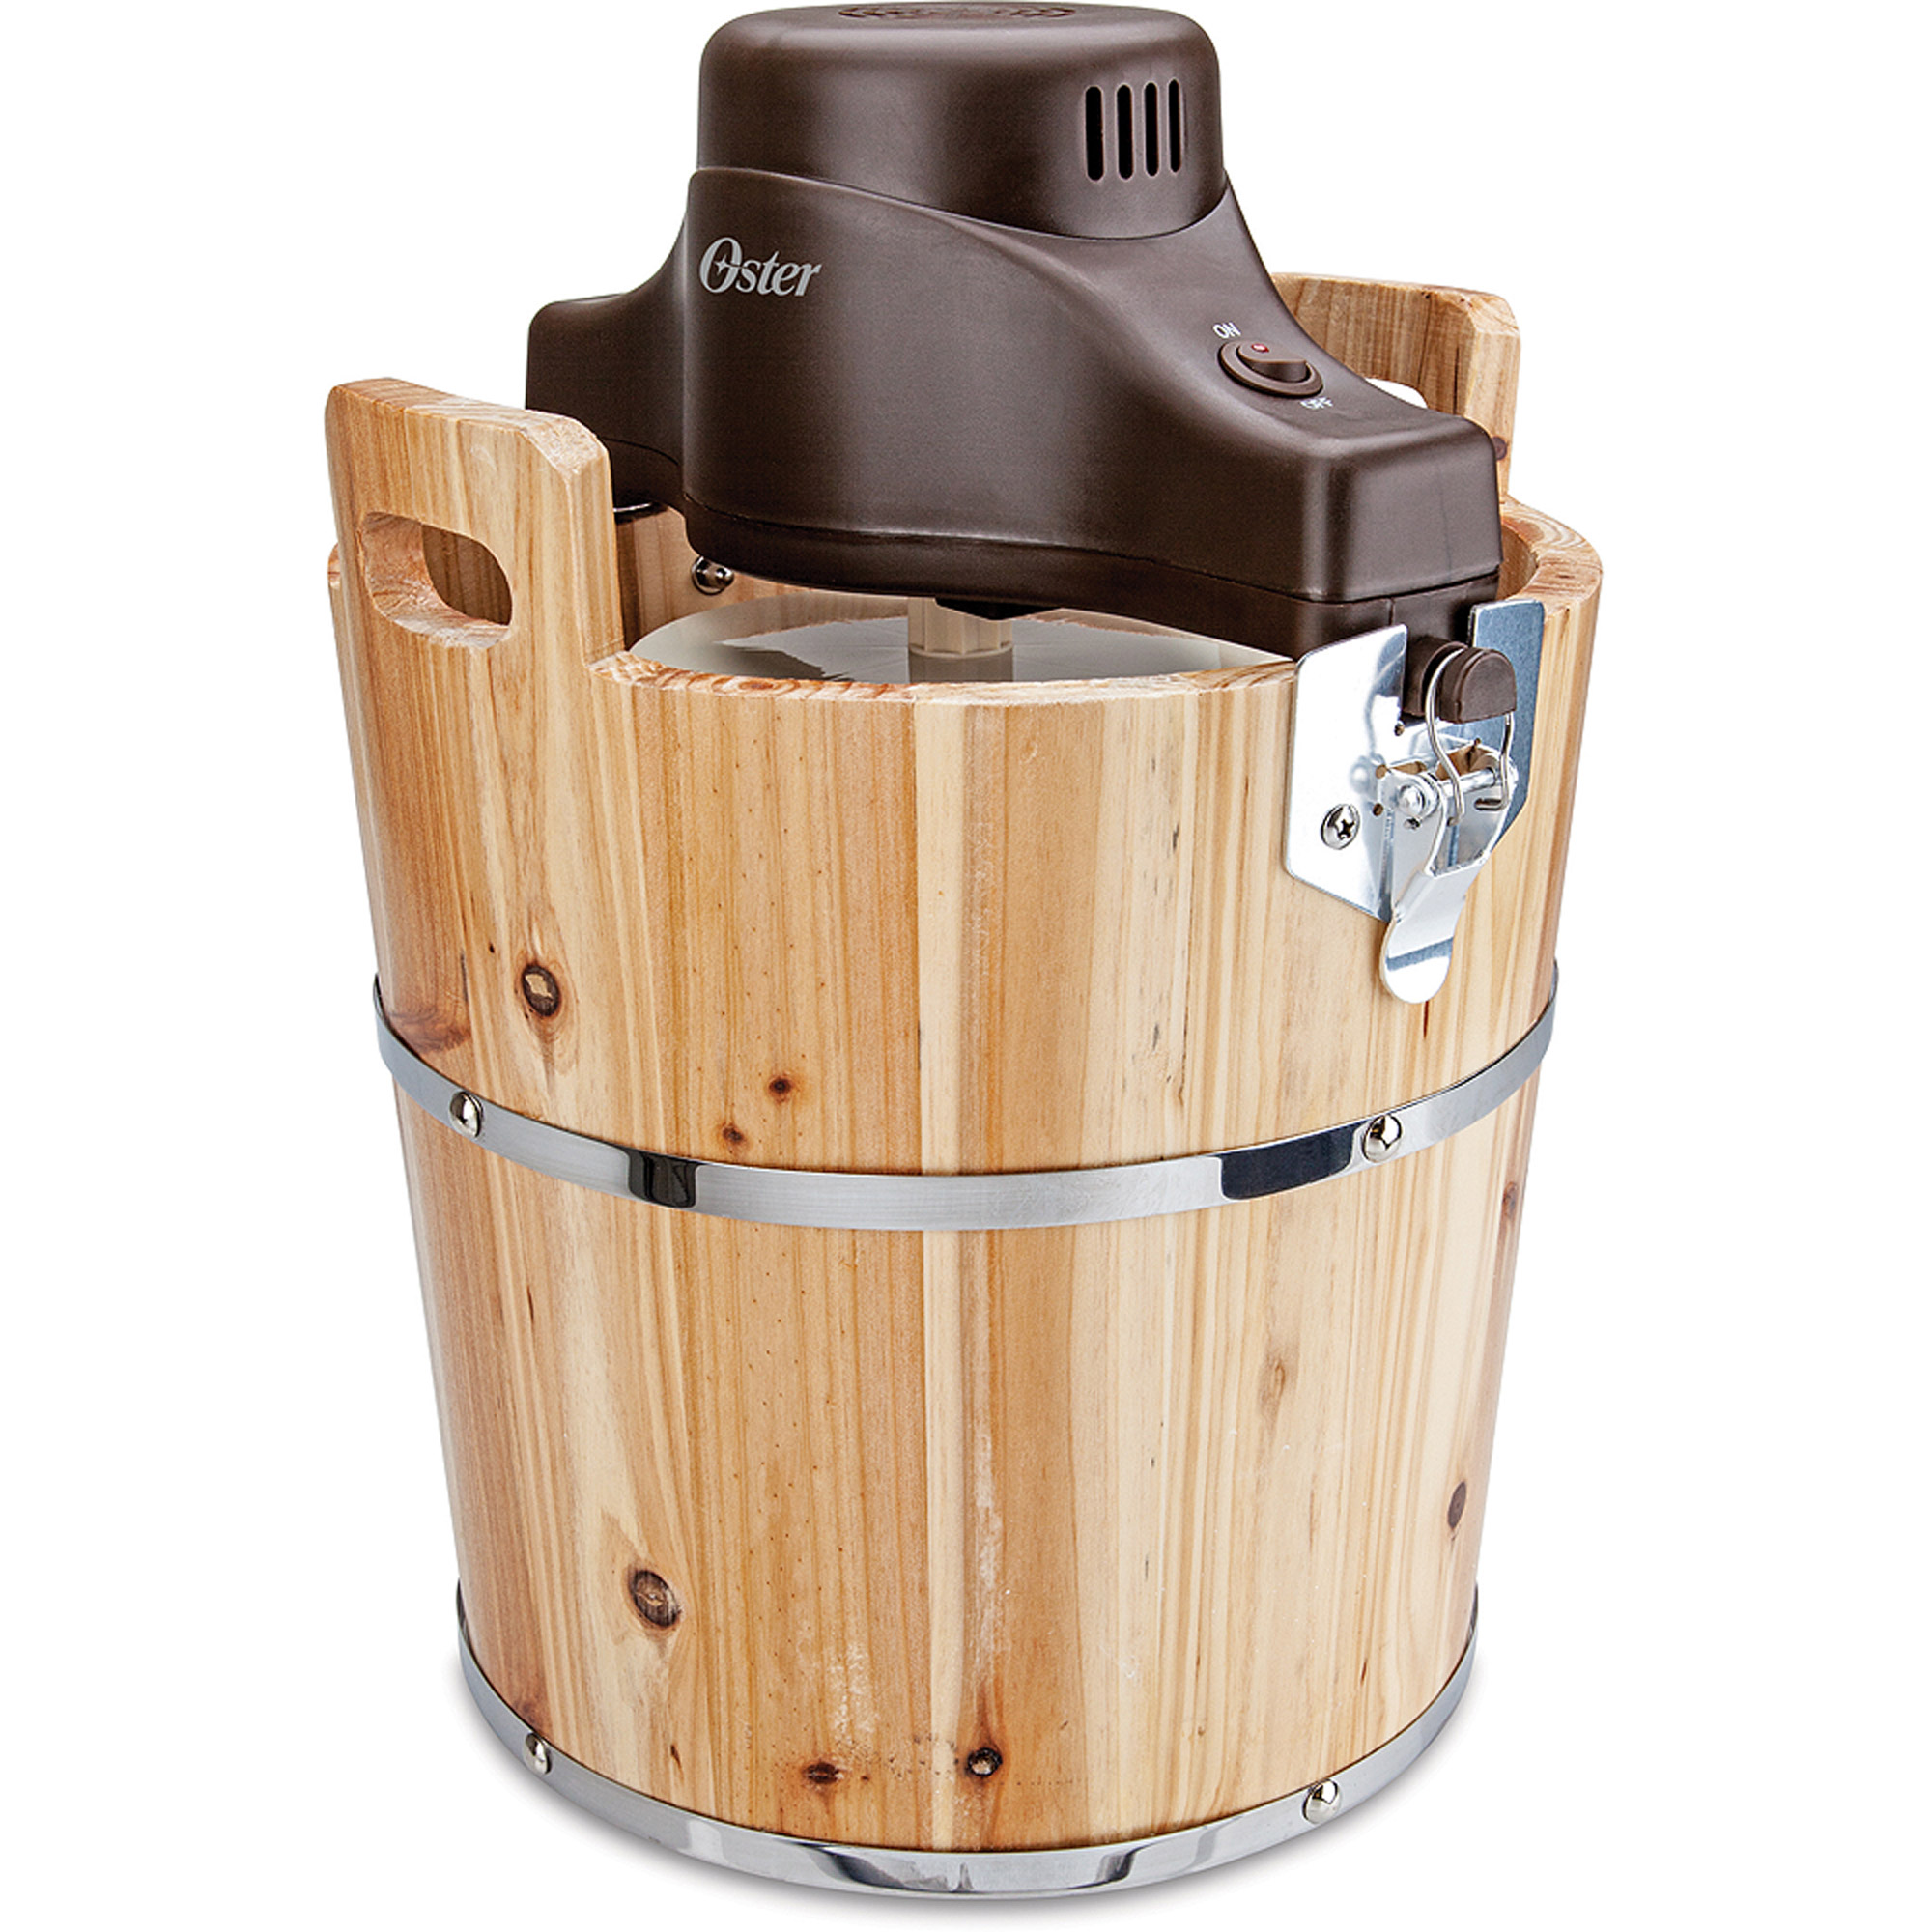 Oster 4-Quart Wood Bucket Ice Cream Maker, FRSTIC-WDB-001